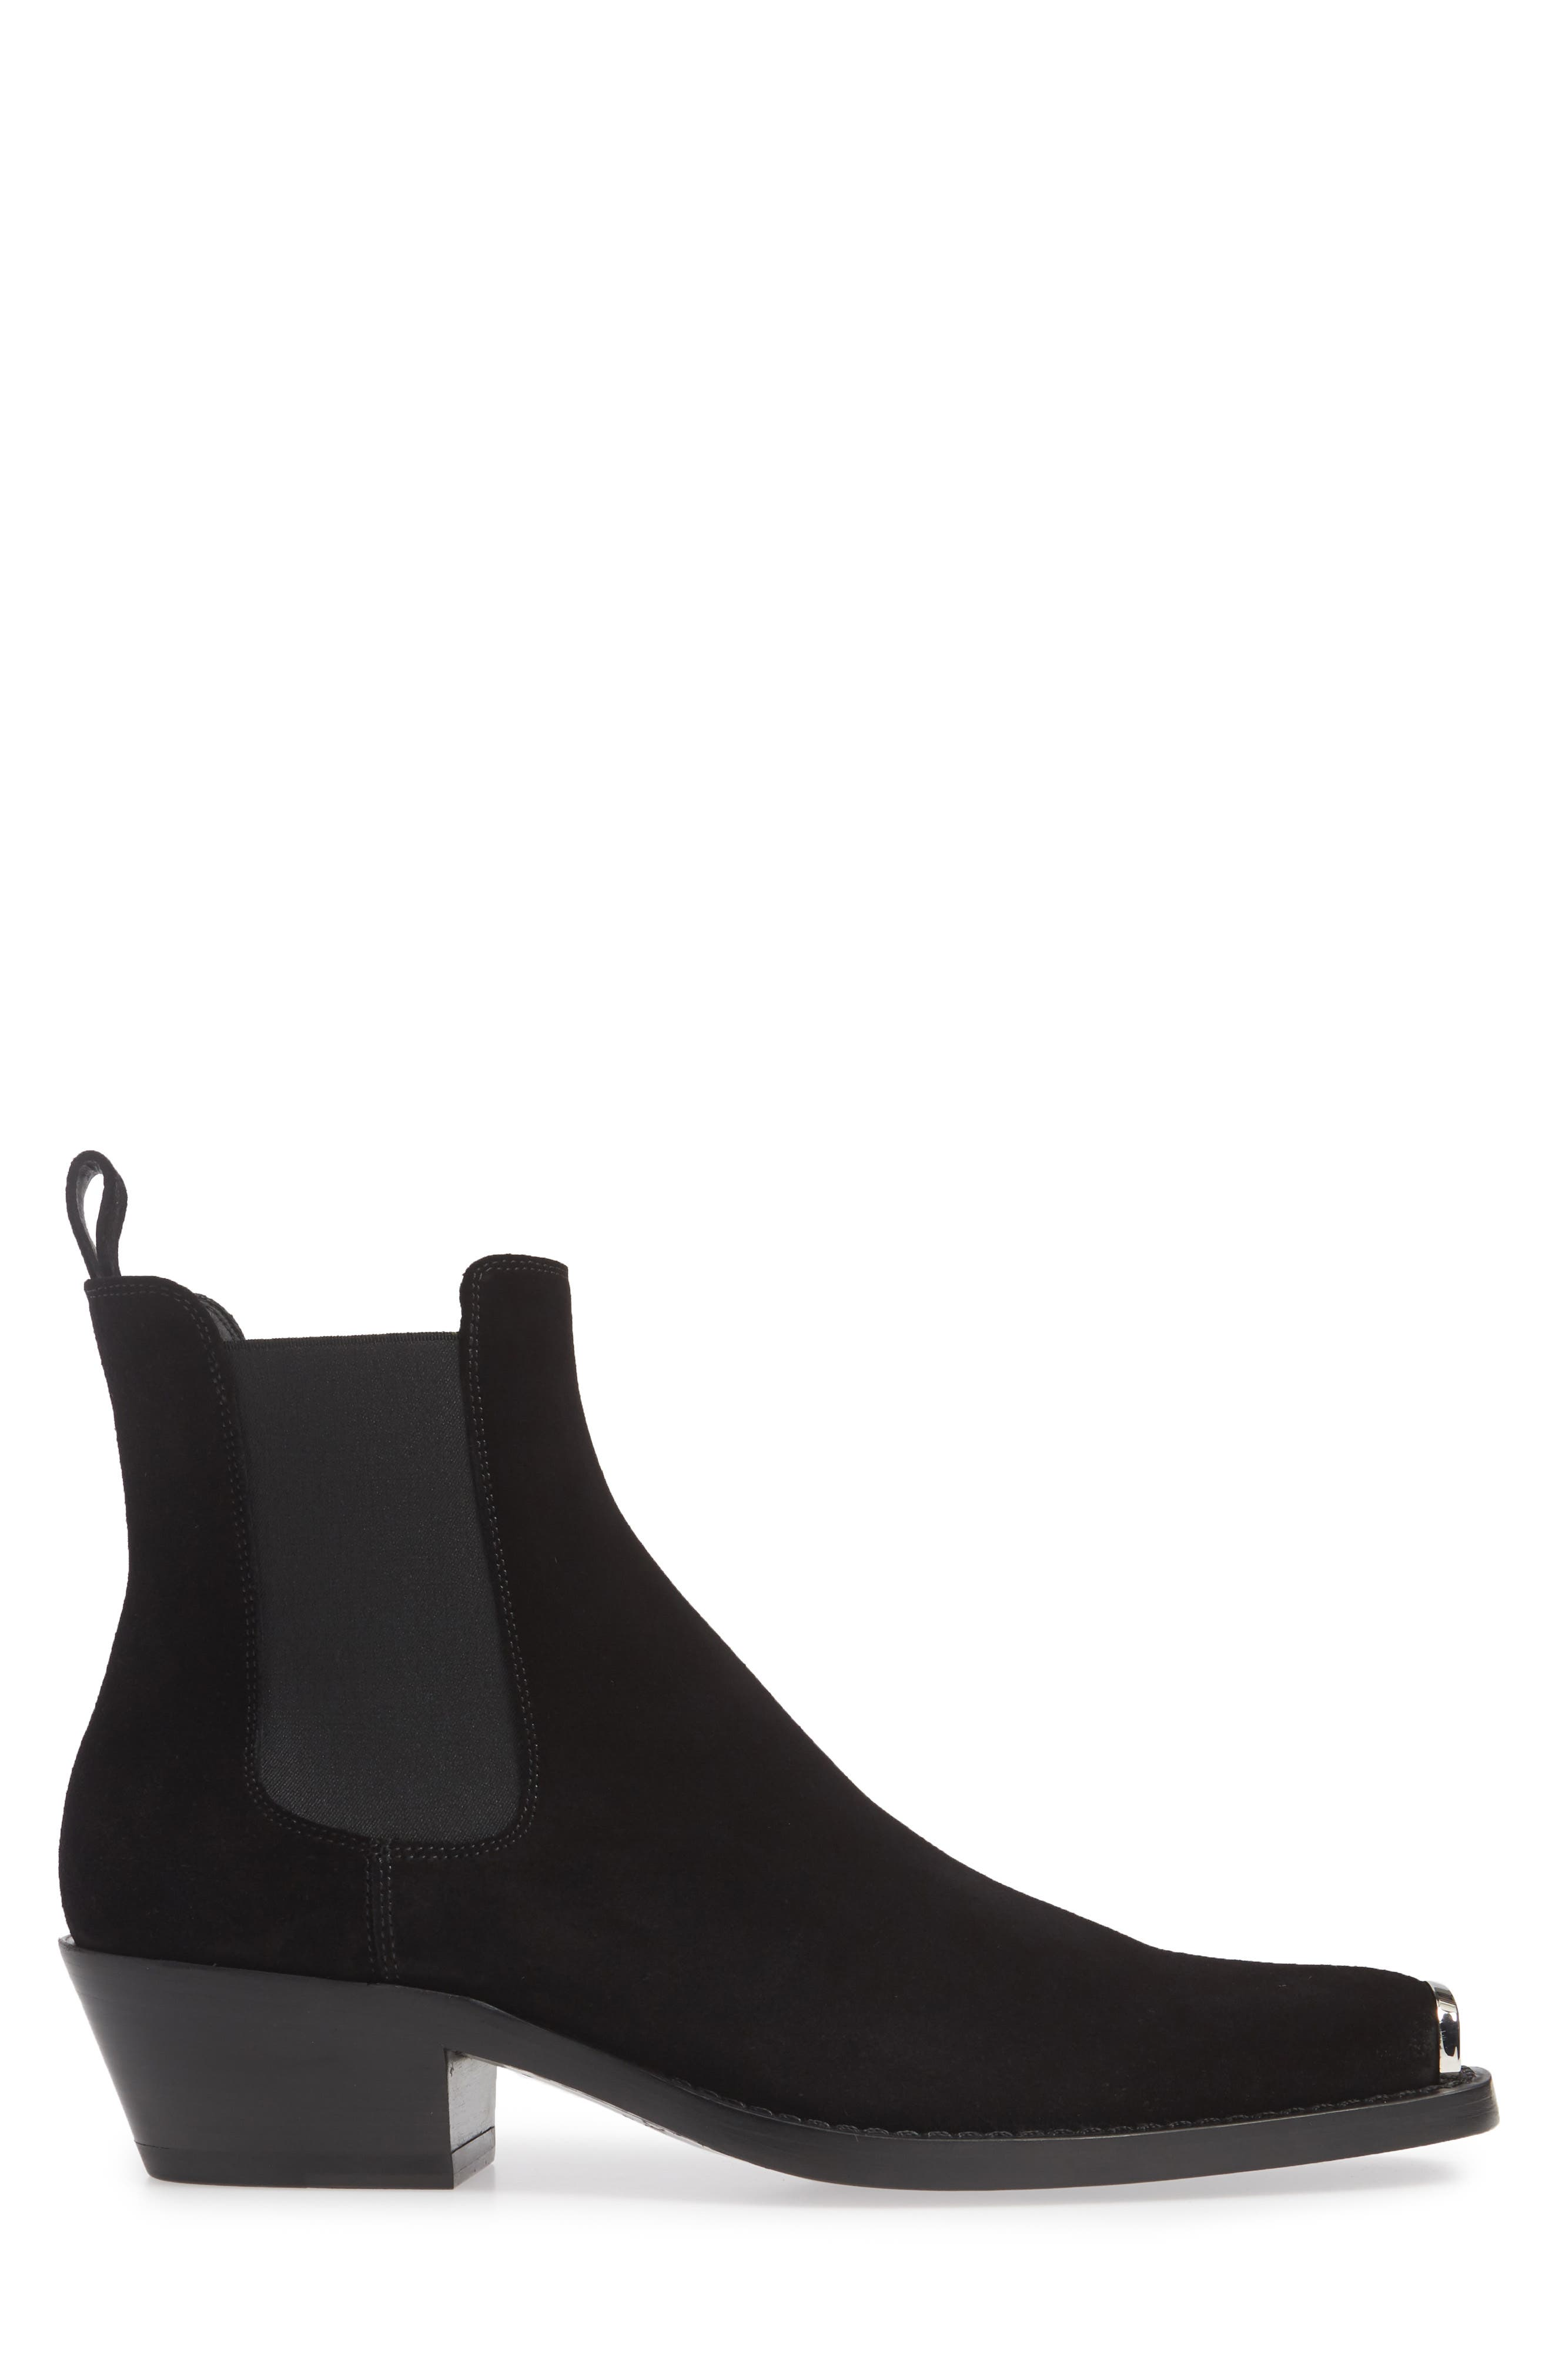 CALVIN KLEIN 205W39NYC, Chris Chelsea Boot, Alternate thumbnail 3, color, BLACK